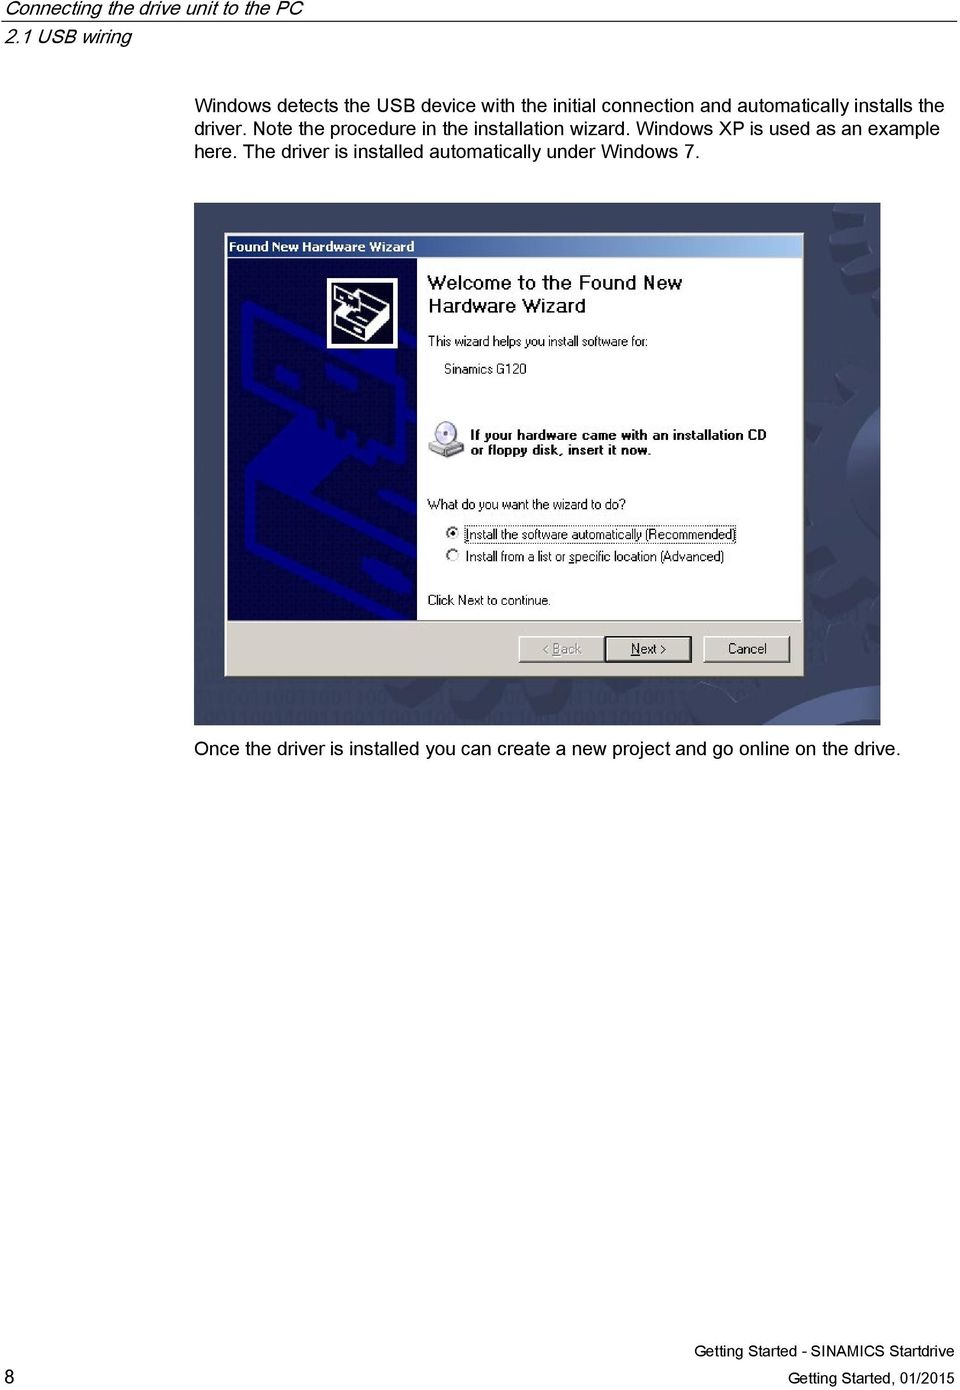 the driver. Note the procedure in the installation wizard. Windows XP is used as an example here.